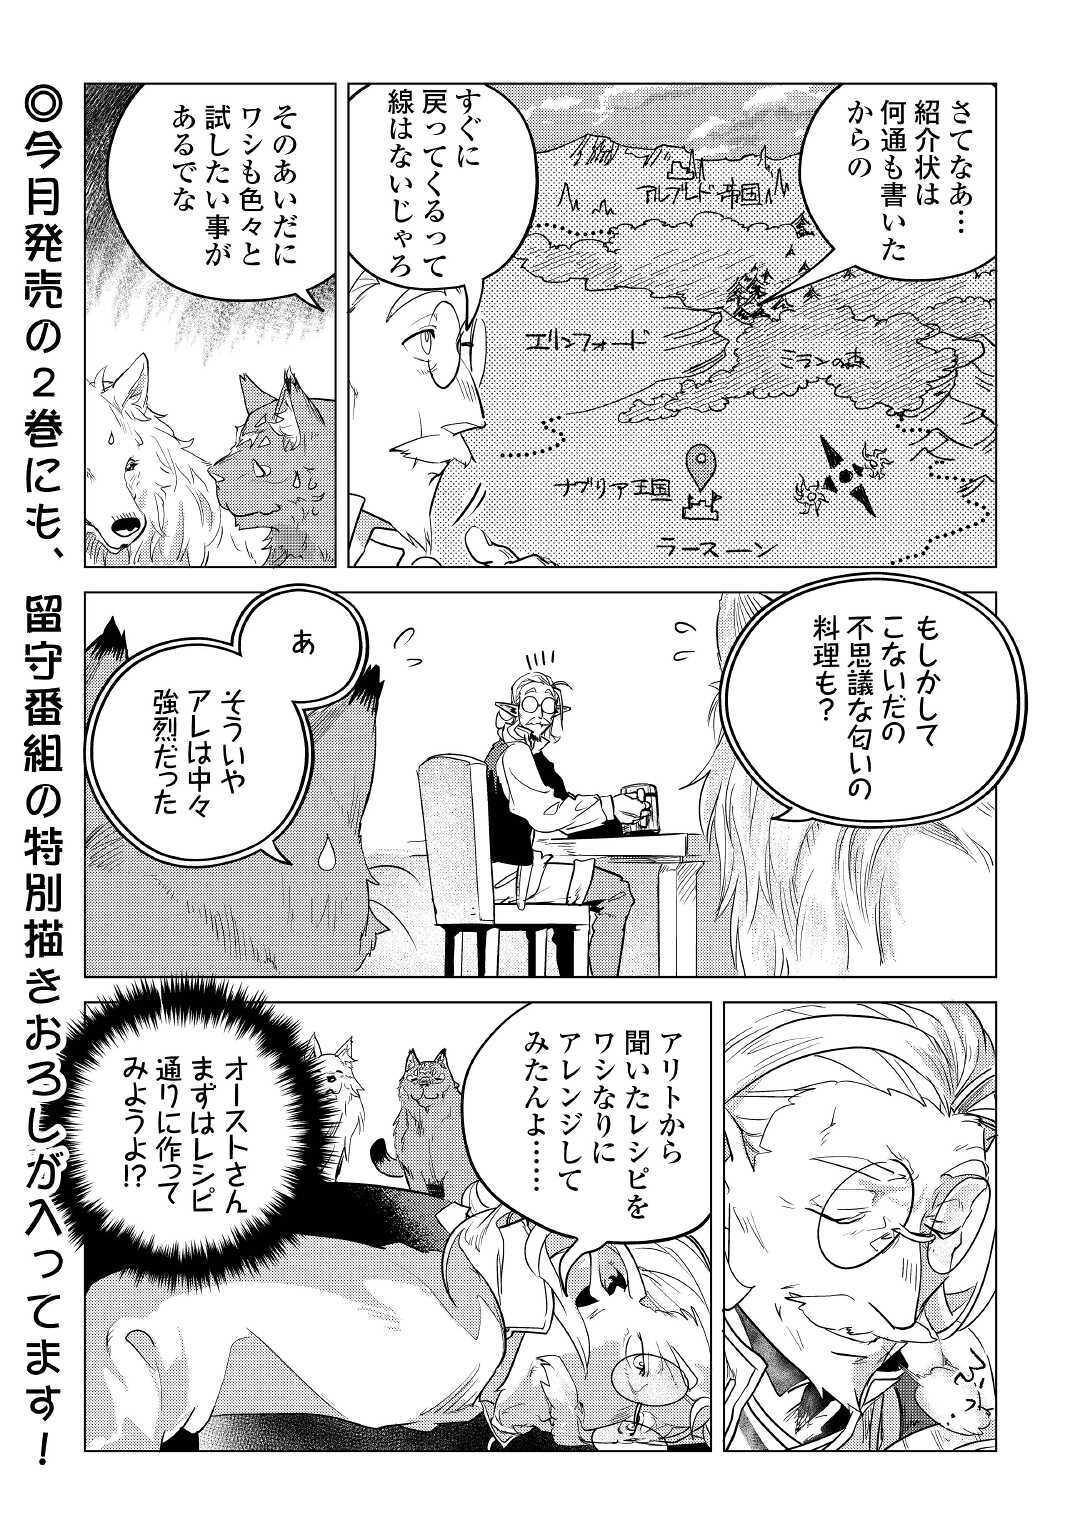 Manga Raw Mofumofu to Isekai Slow Life o Mezashimasu Manga Chapter 14